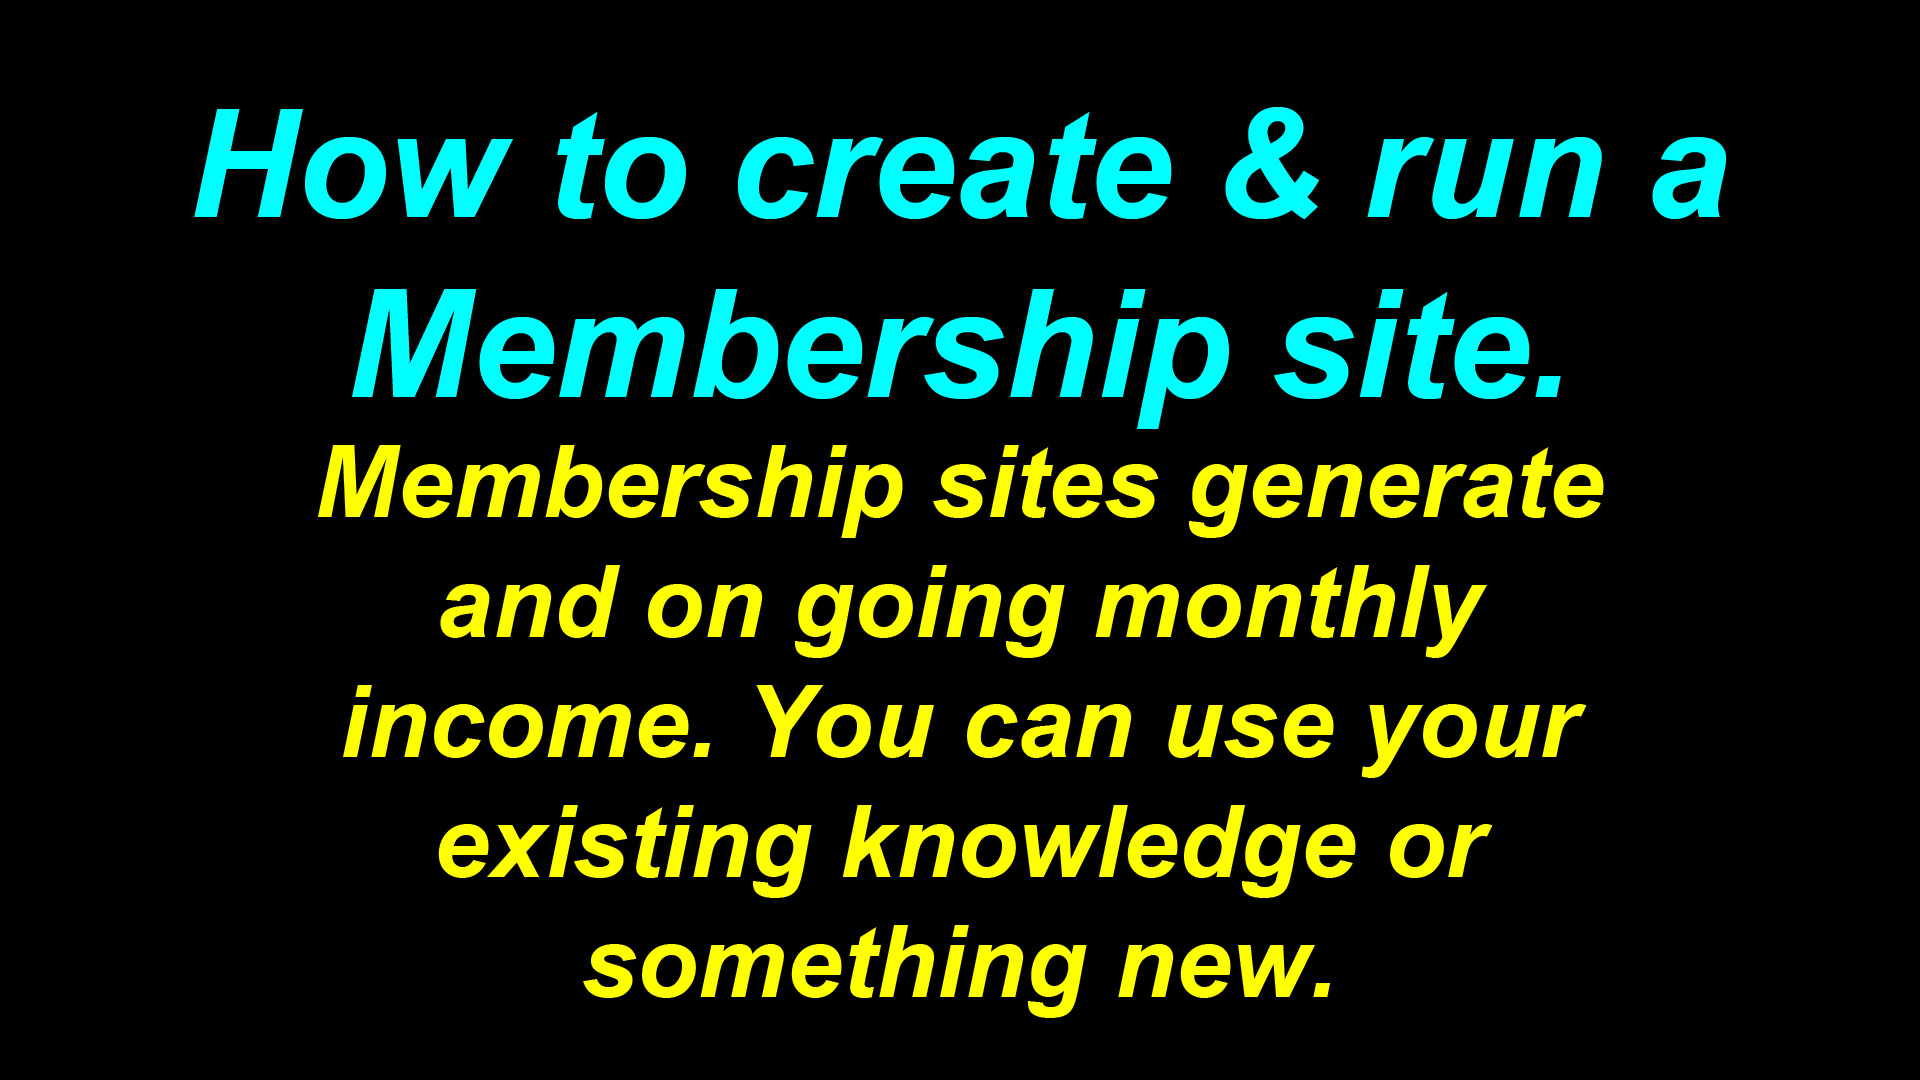 How to create and run a membership site